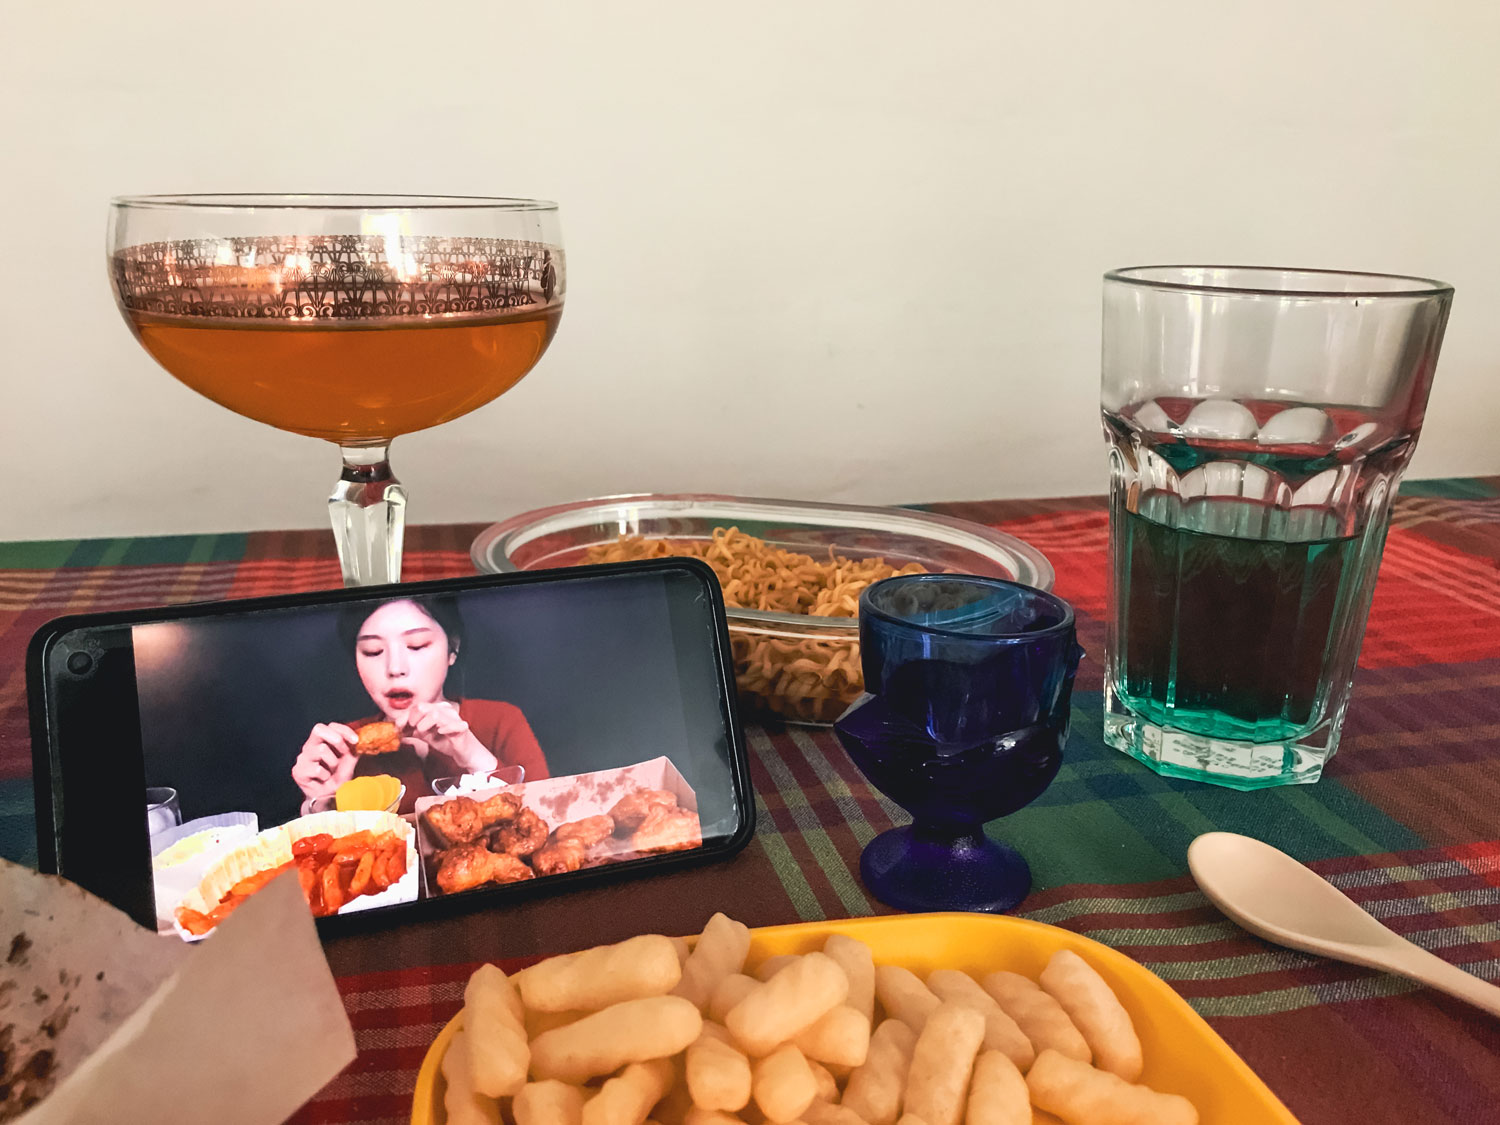 Food for one and a smart phone displaying a person eating.